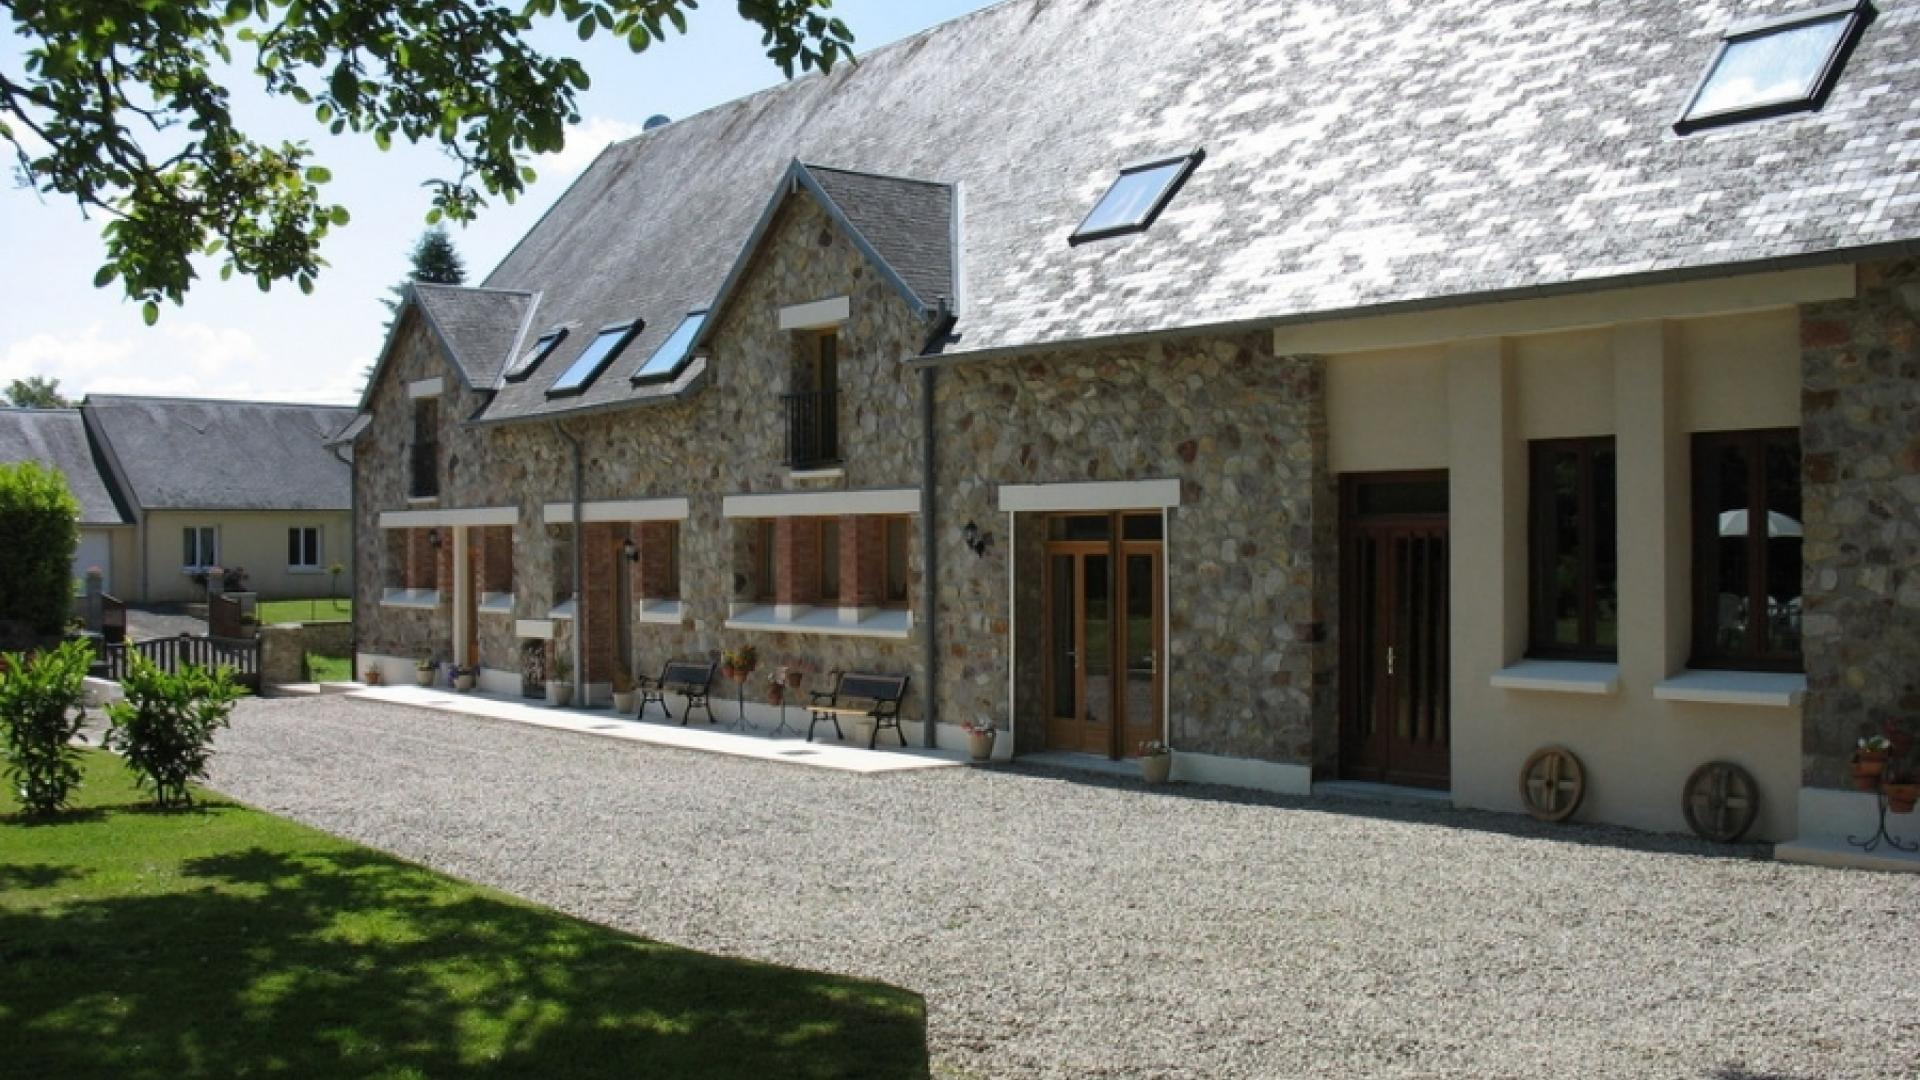 4 Bedroom Cottage/shared grounds in Normandy, France